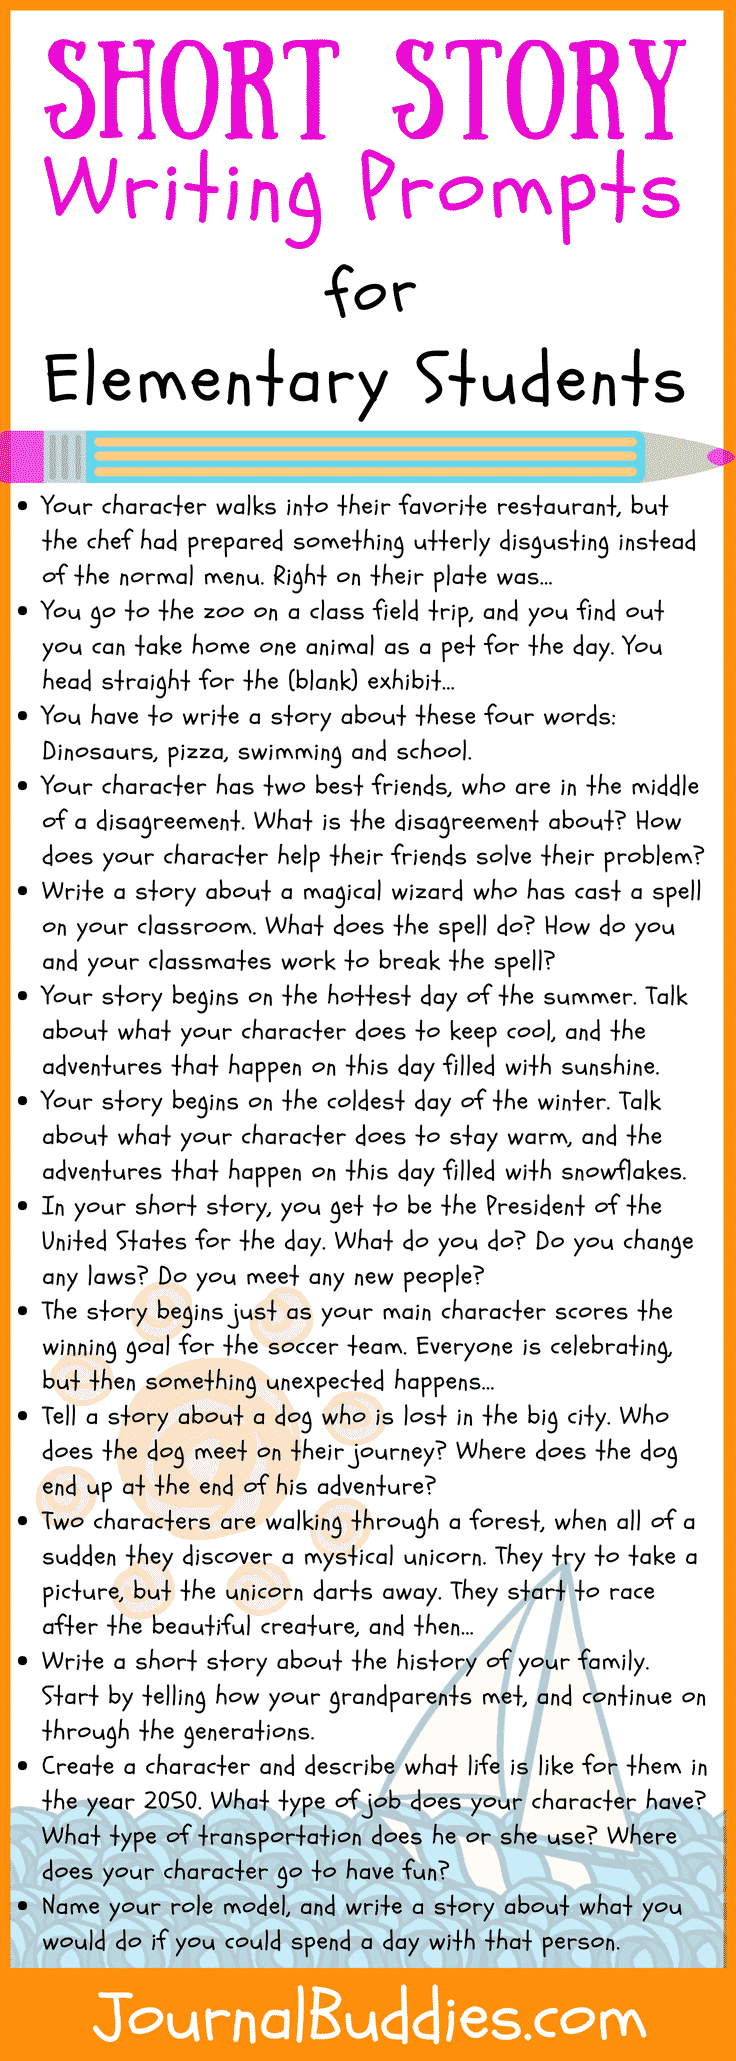 Use these short story writing prompts to encourage your students to think creatively and to give them an opportunity to develop their own characters and plot lines.